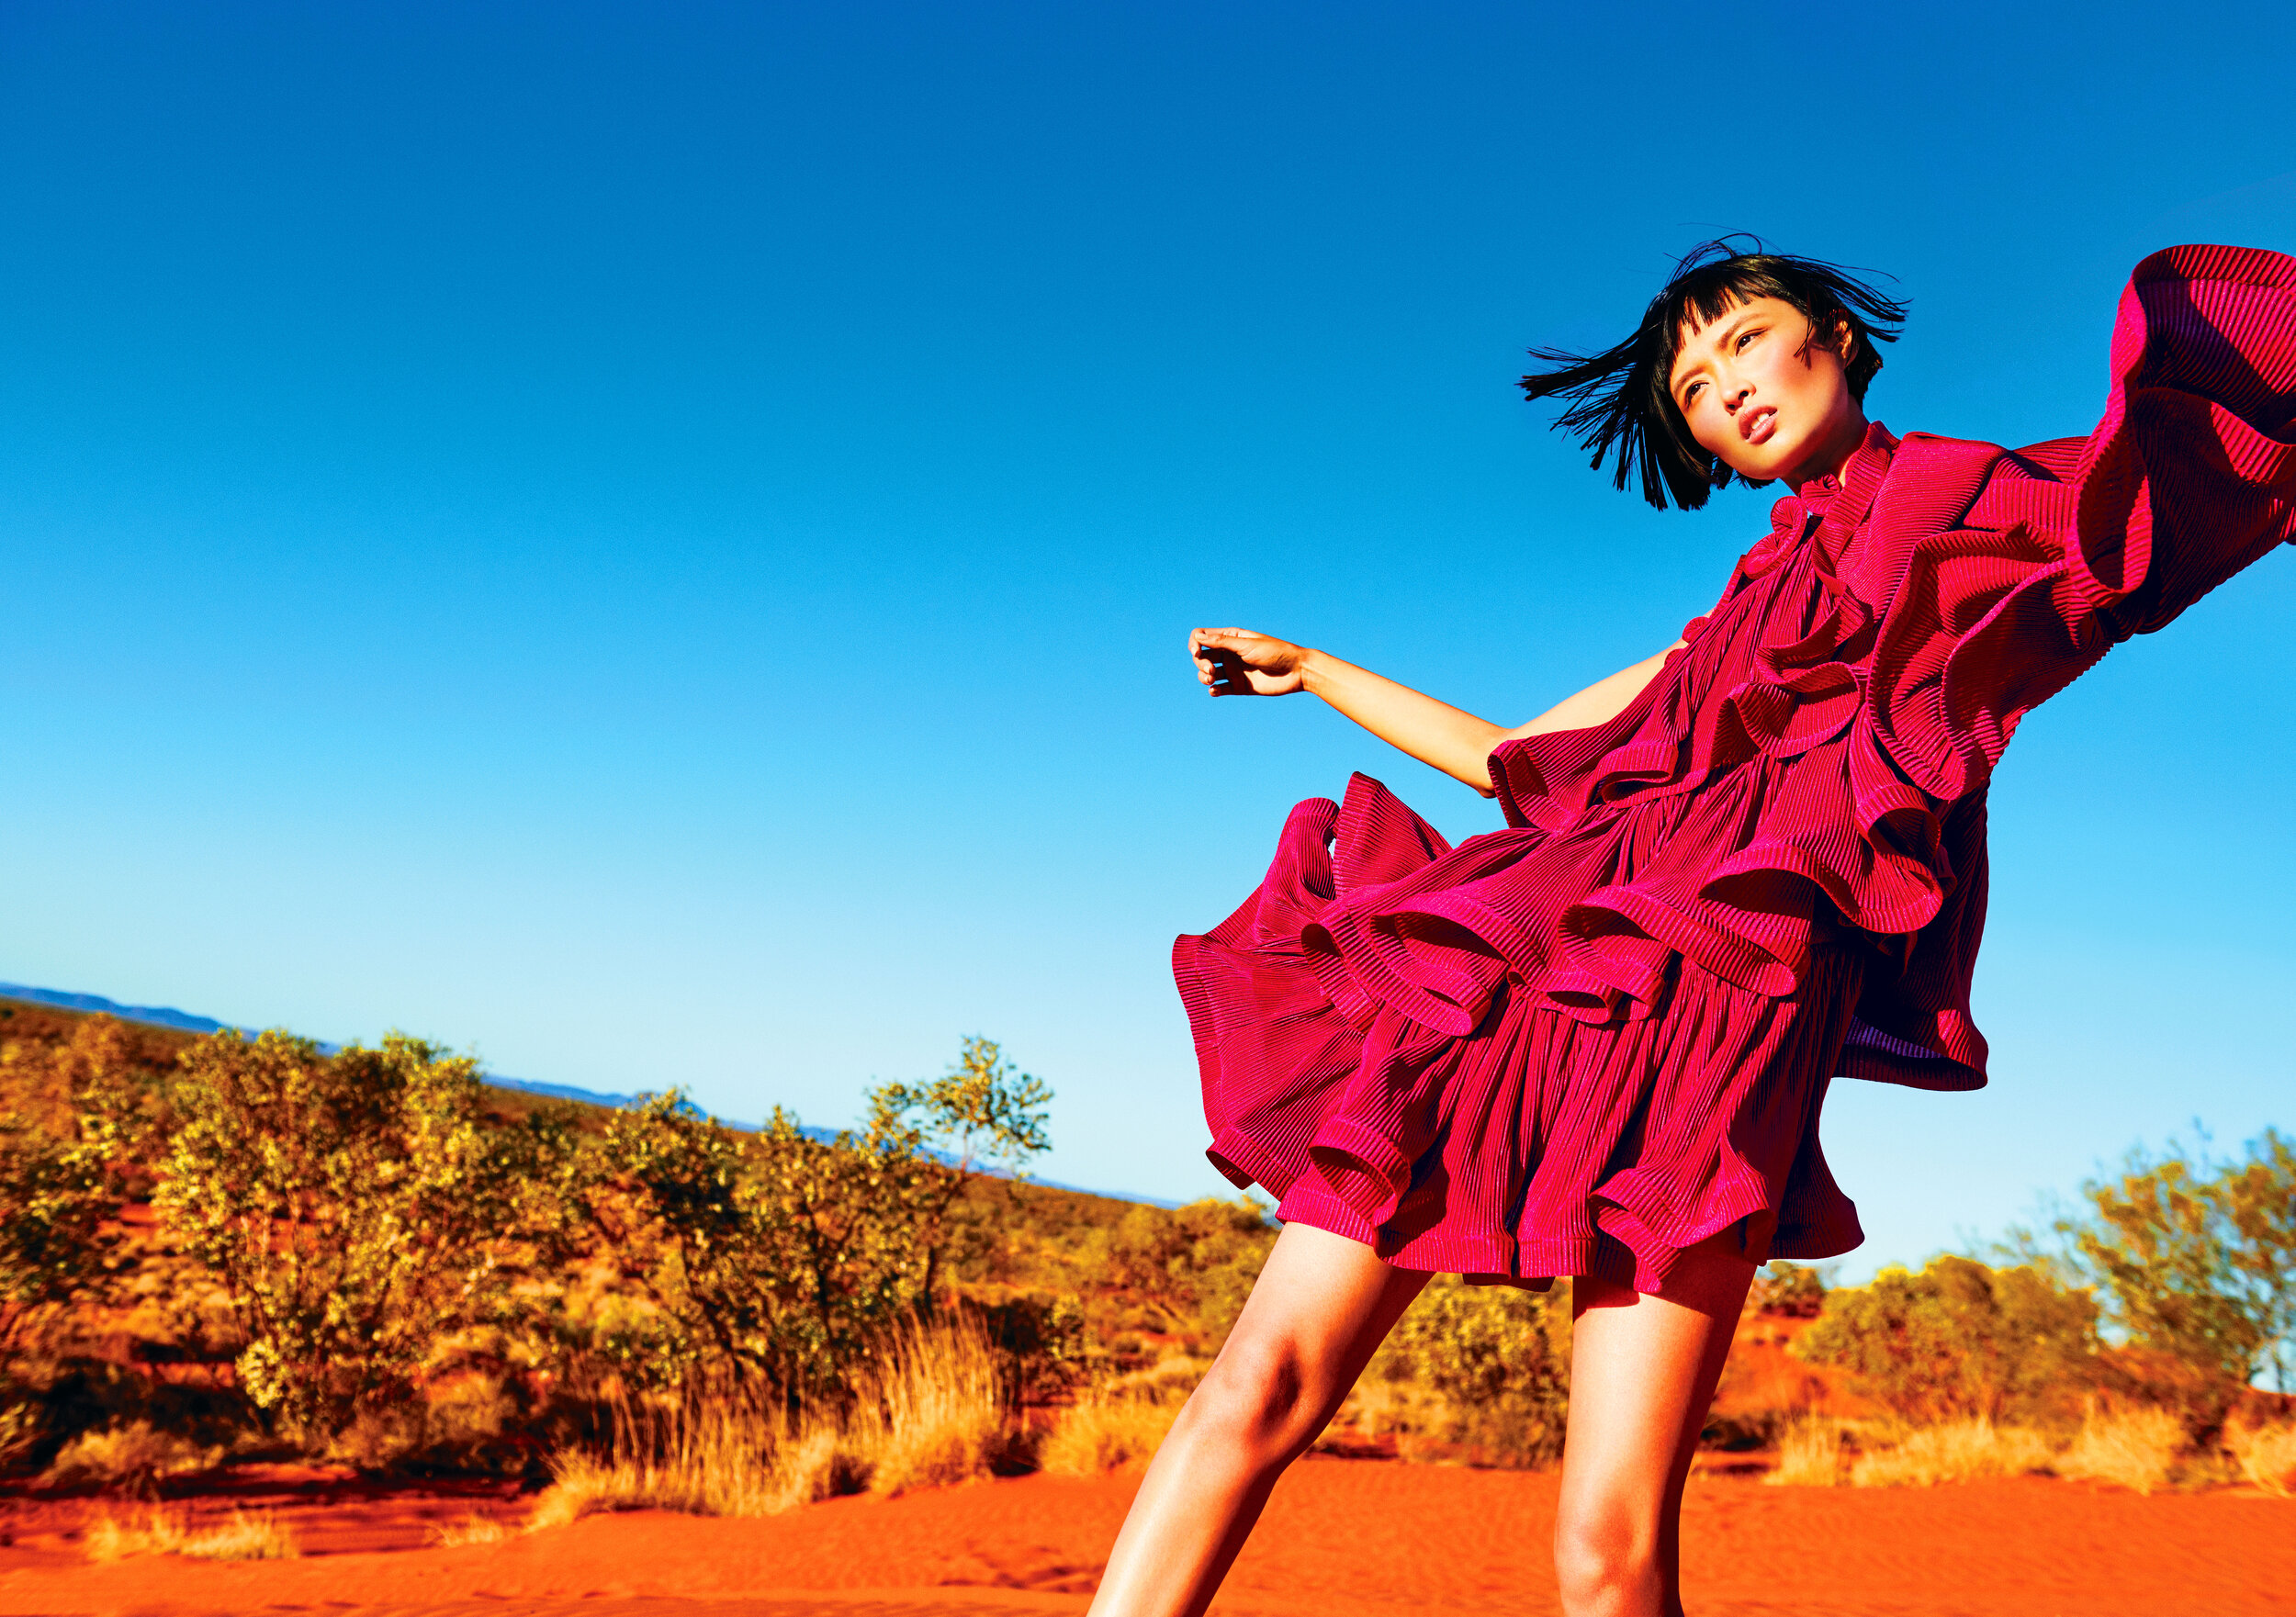 Alice-Springs-Campaign-Image-5-without-logo.jpg